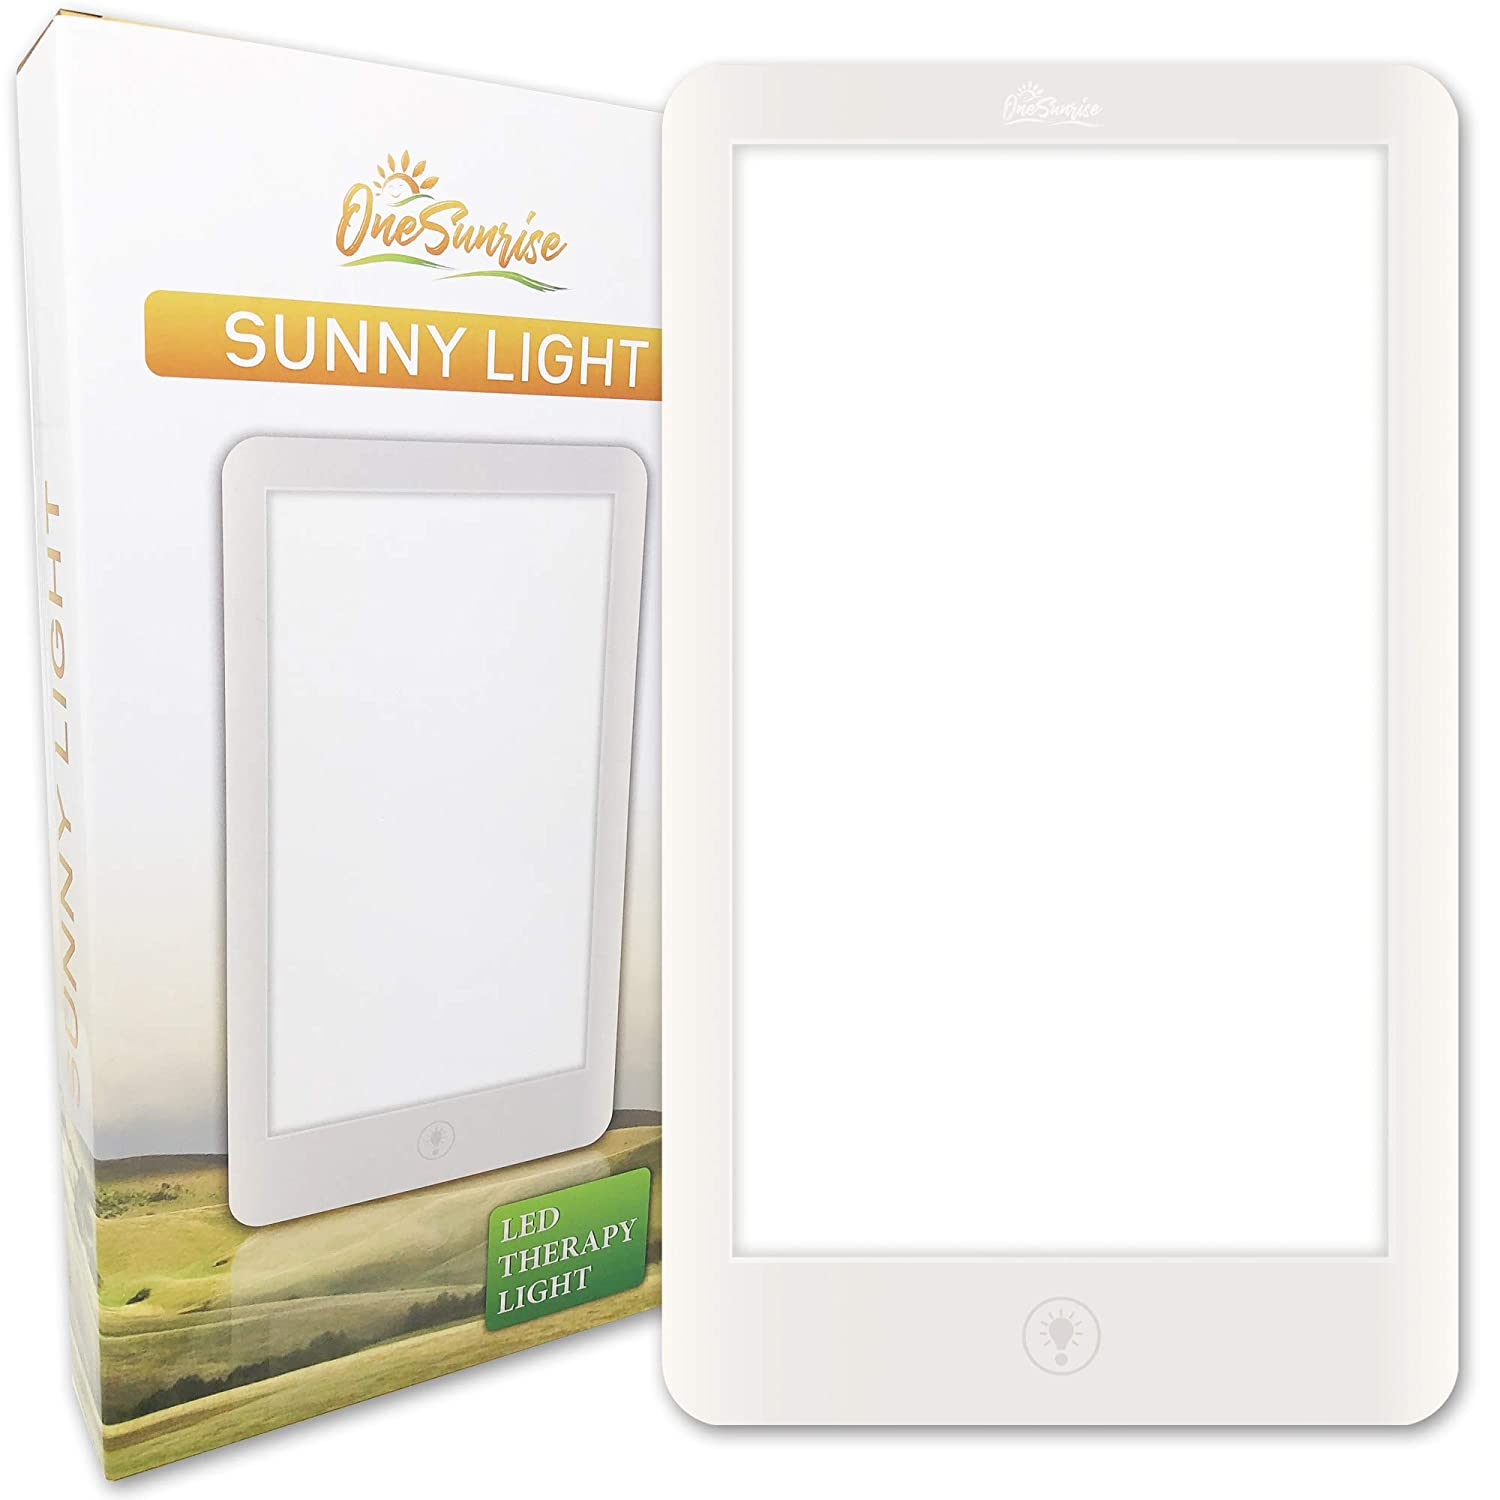 SunnyLight White Light Therapy Lamp Super Bright LED Panel Light with Adjustable Brightness up to 32,000 Lux and Multi-Position Stand